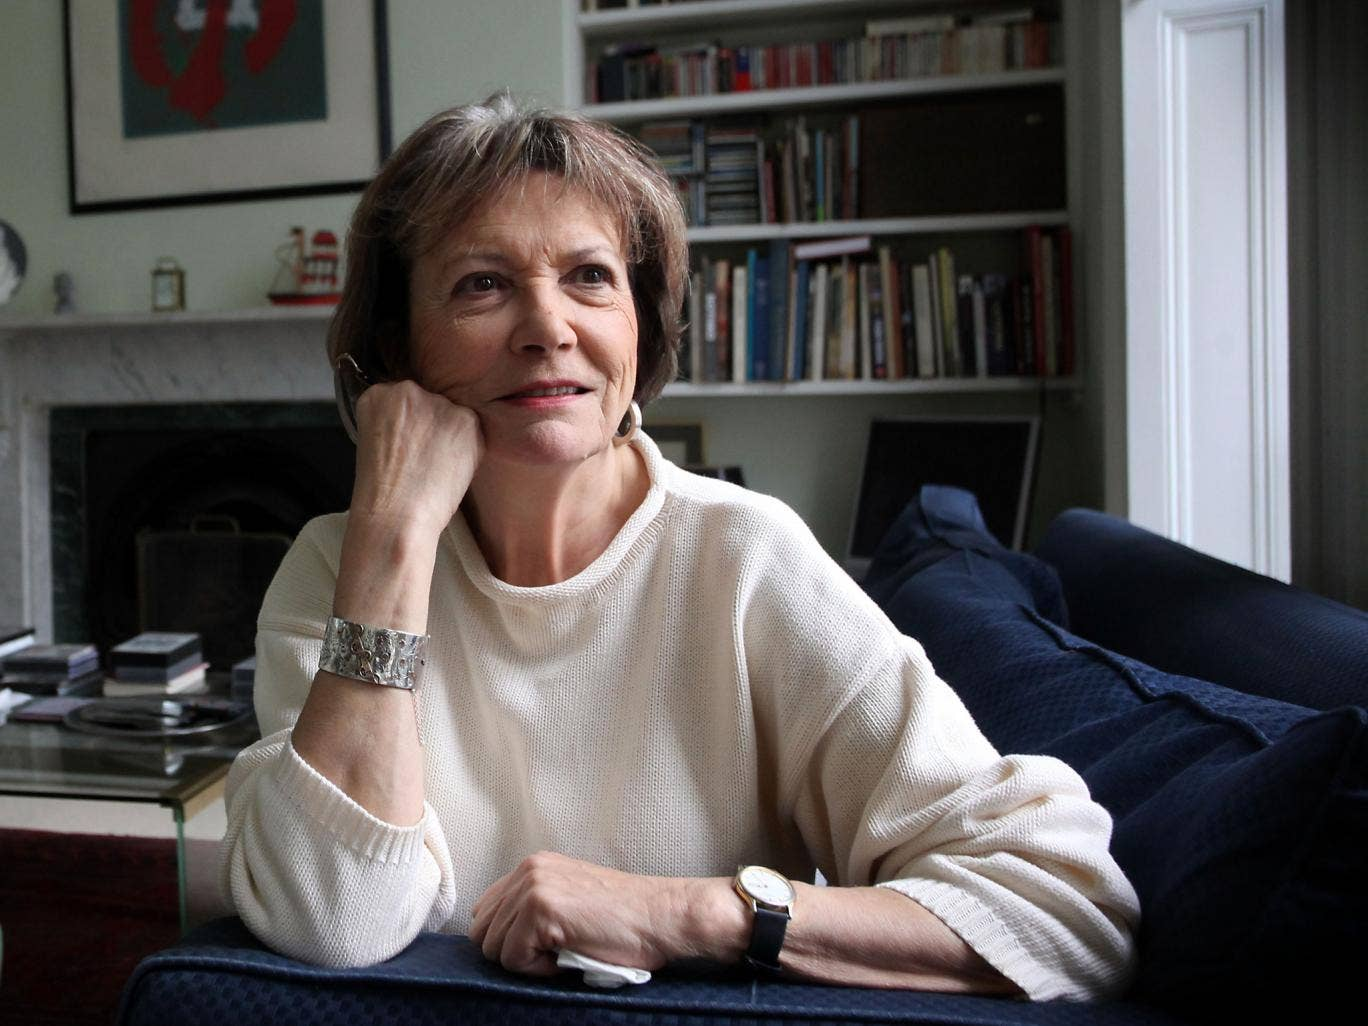 The journalist Joan Bakewell